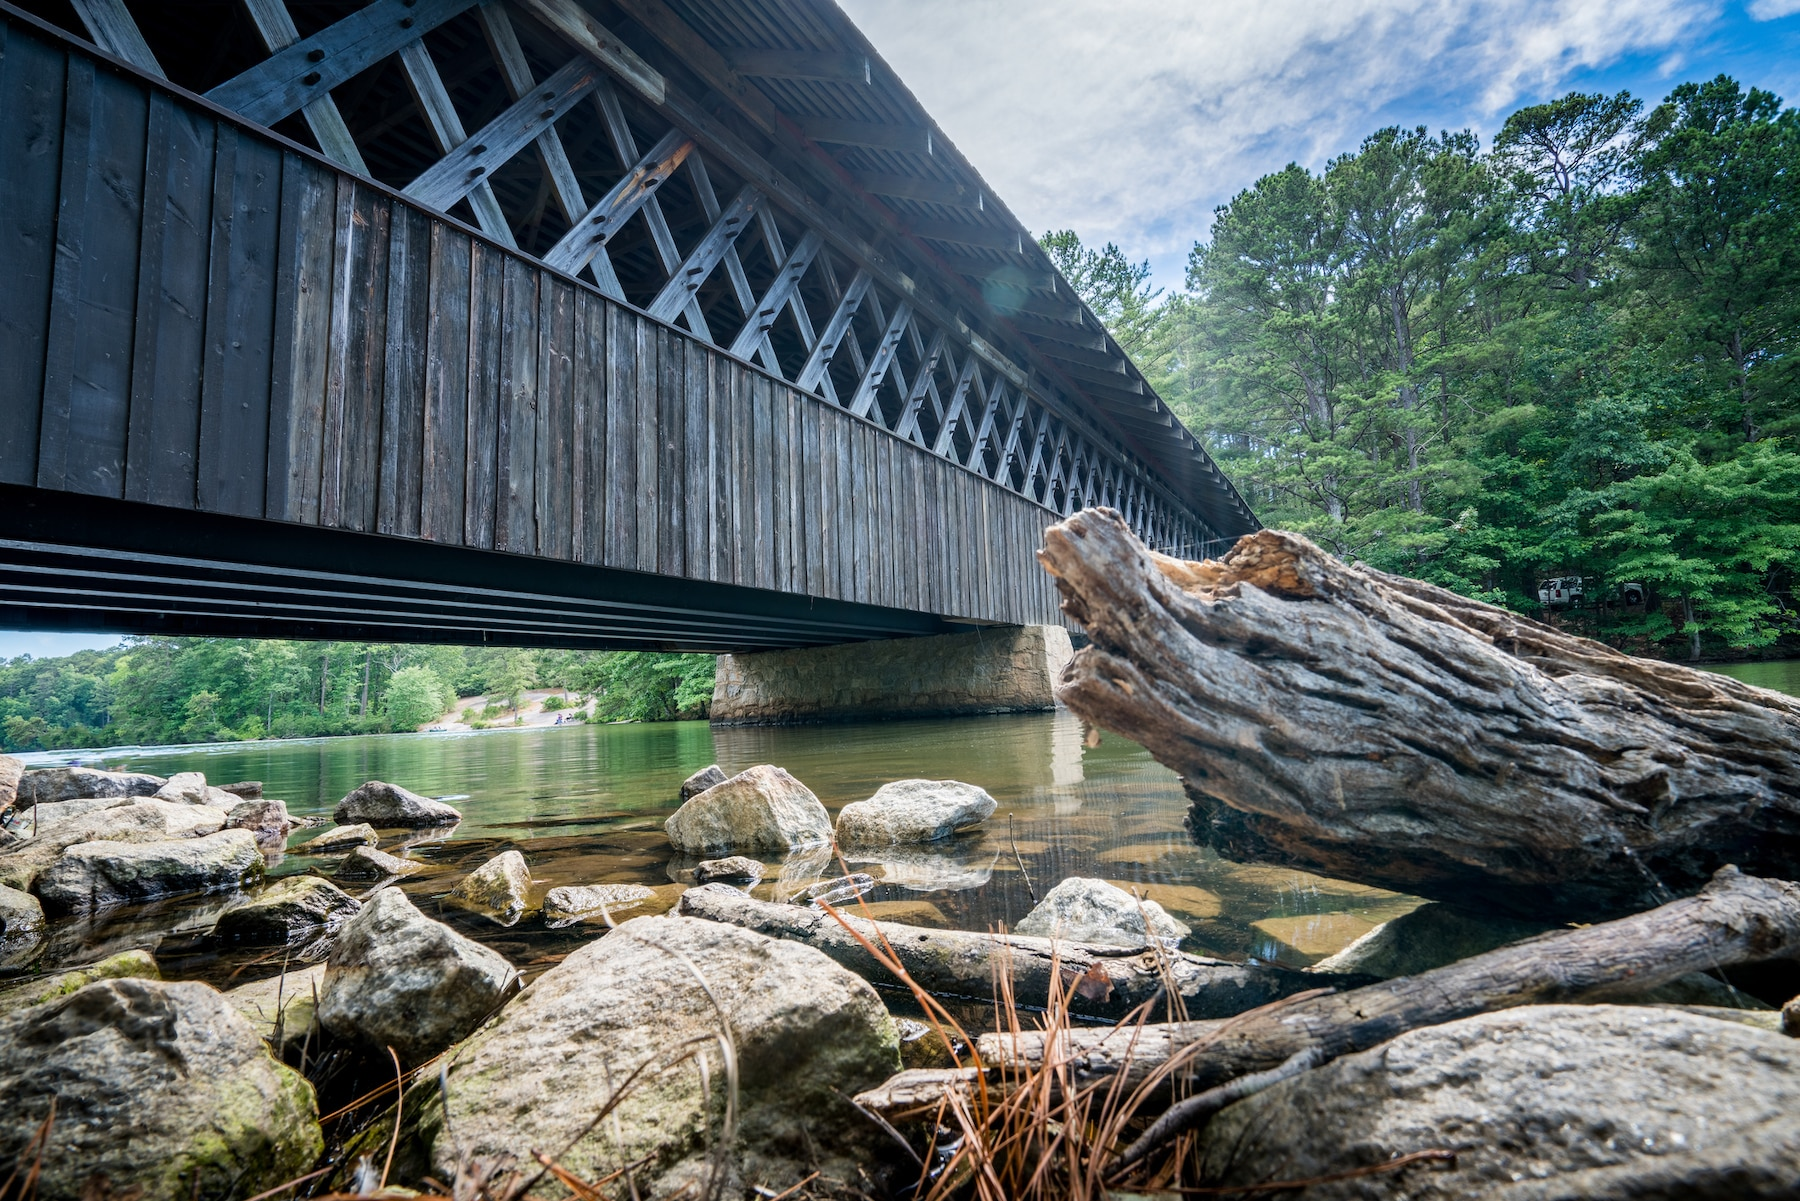 Covered bridge, Stone Mountain Georgia